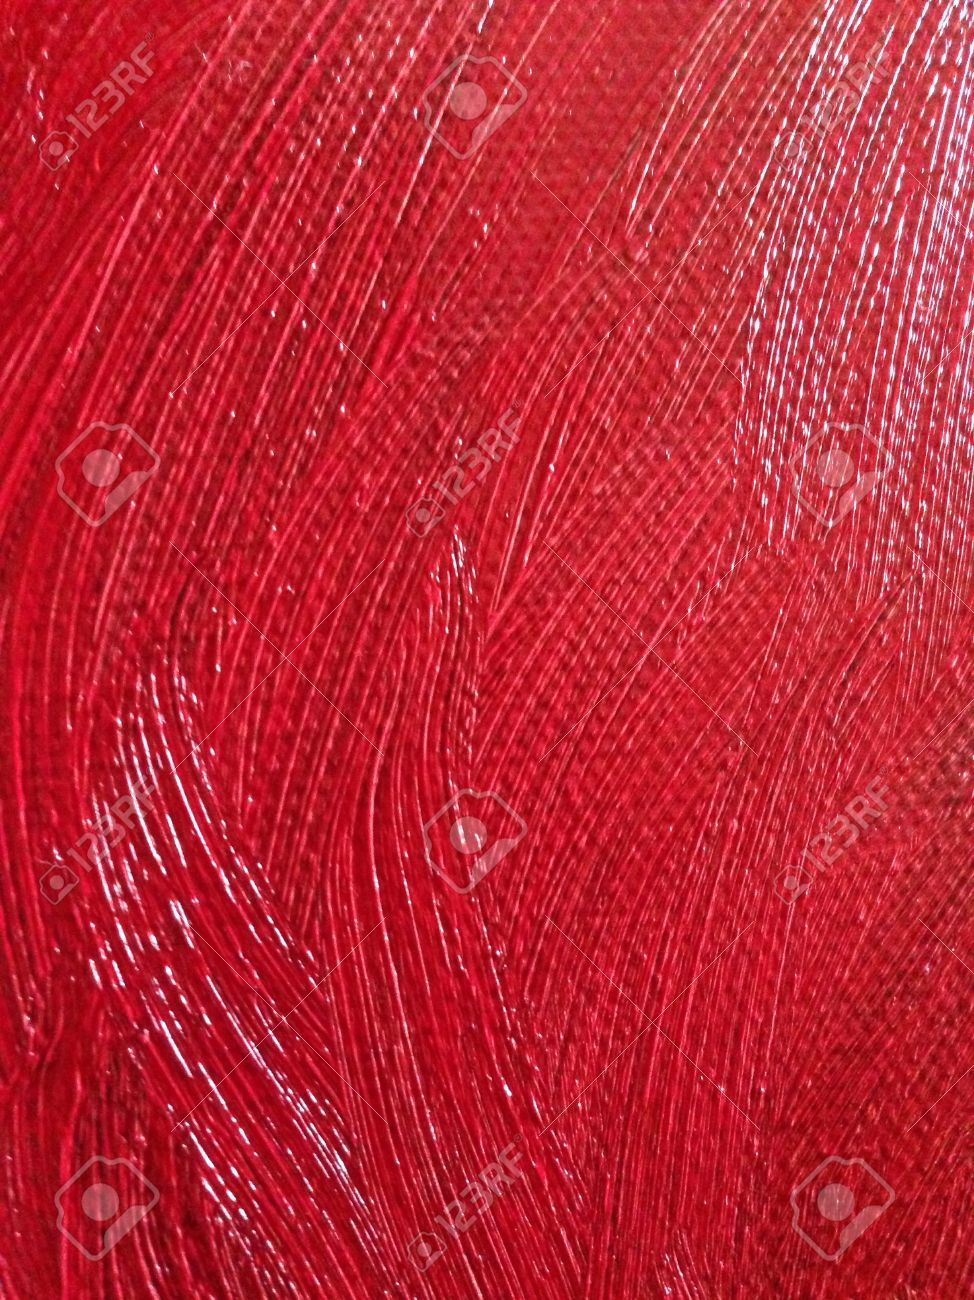 Red Oil Paint On Canvass Texture Stock Photo Picture And Royalty